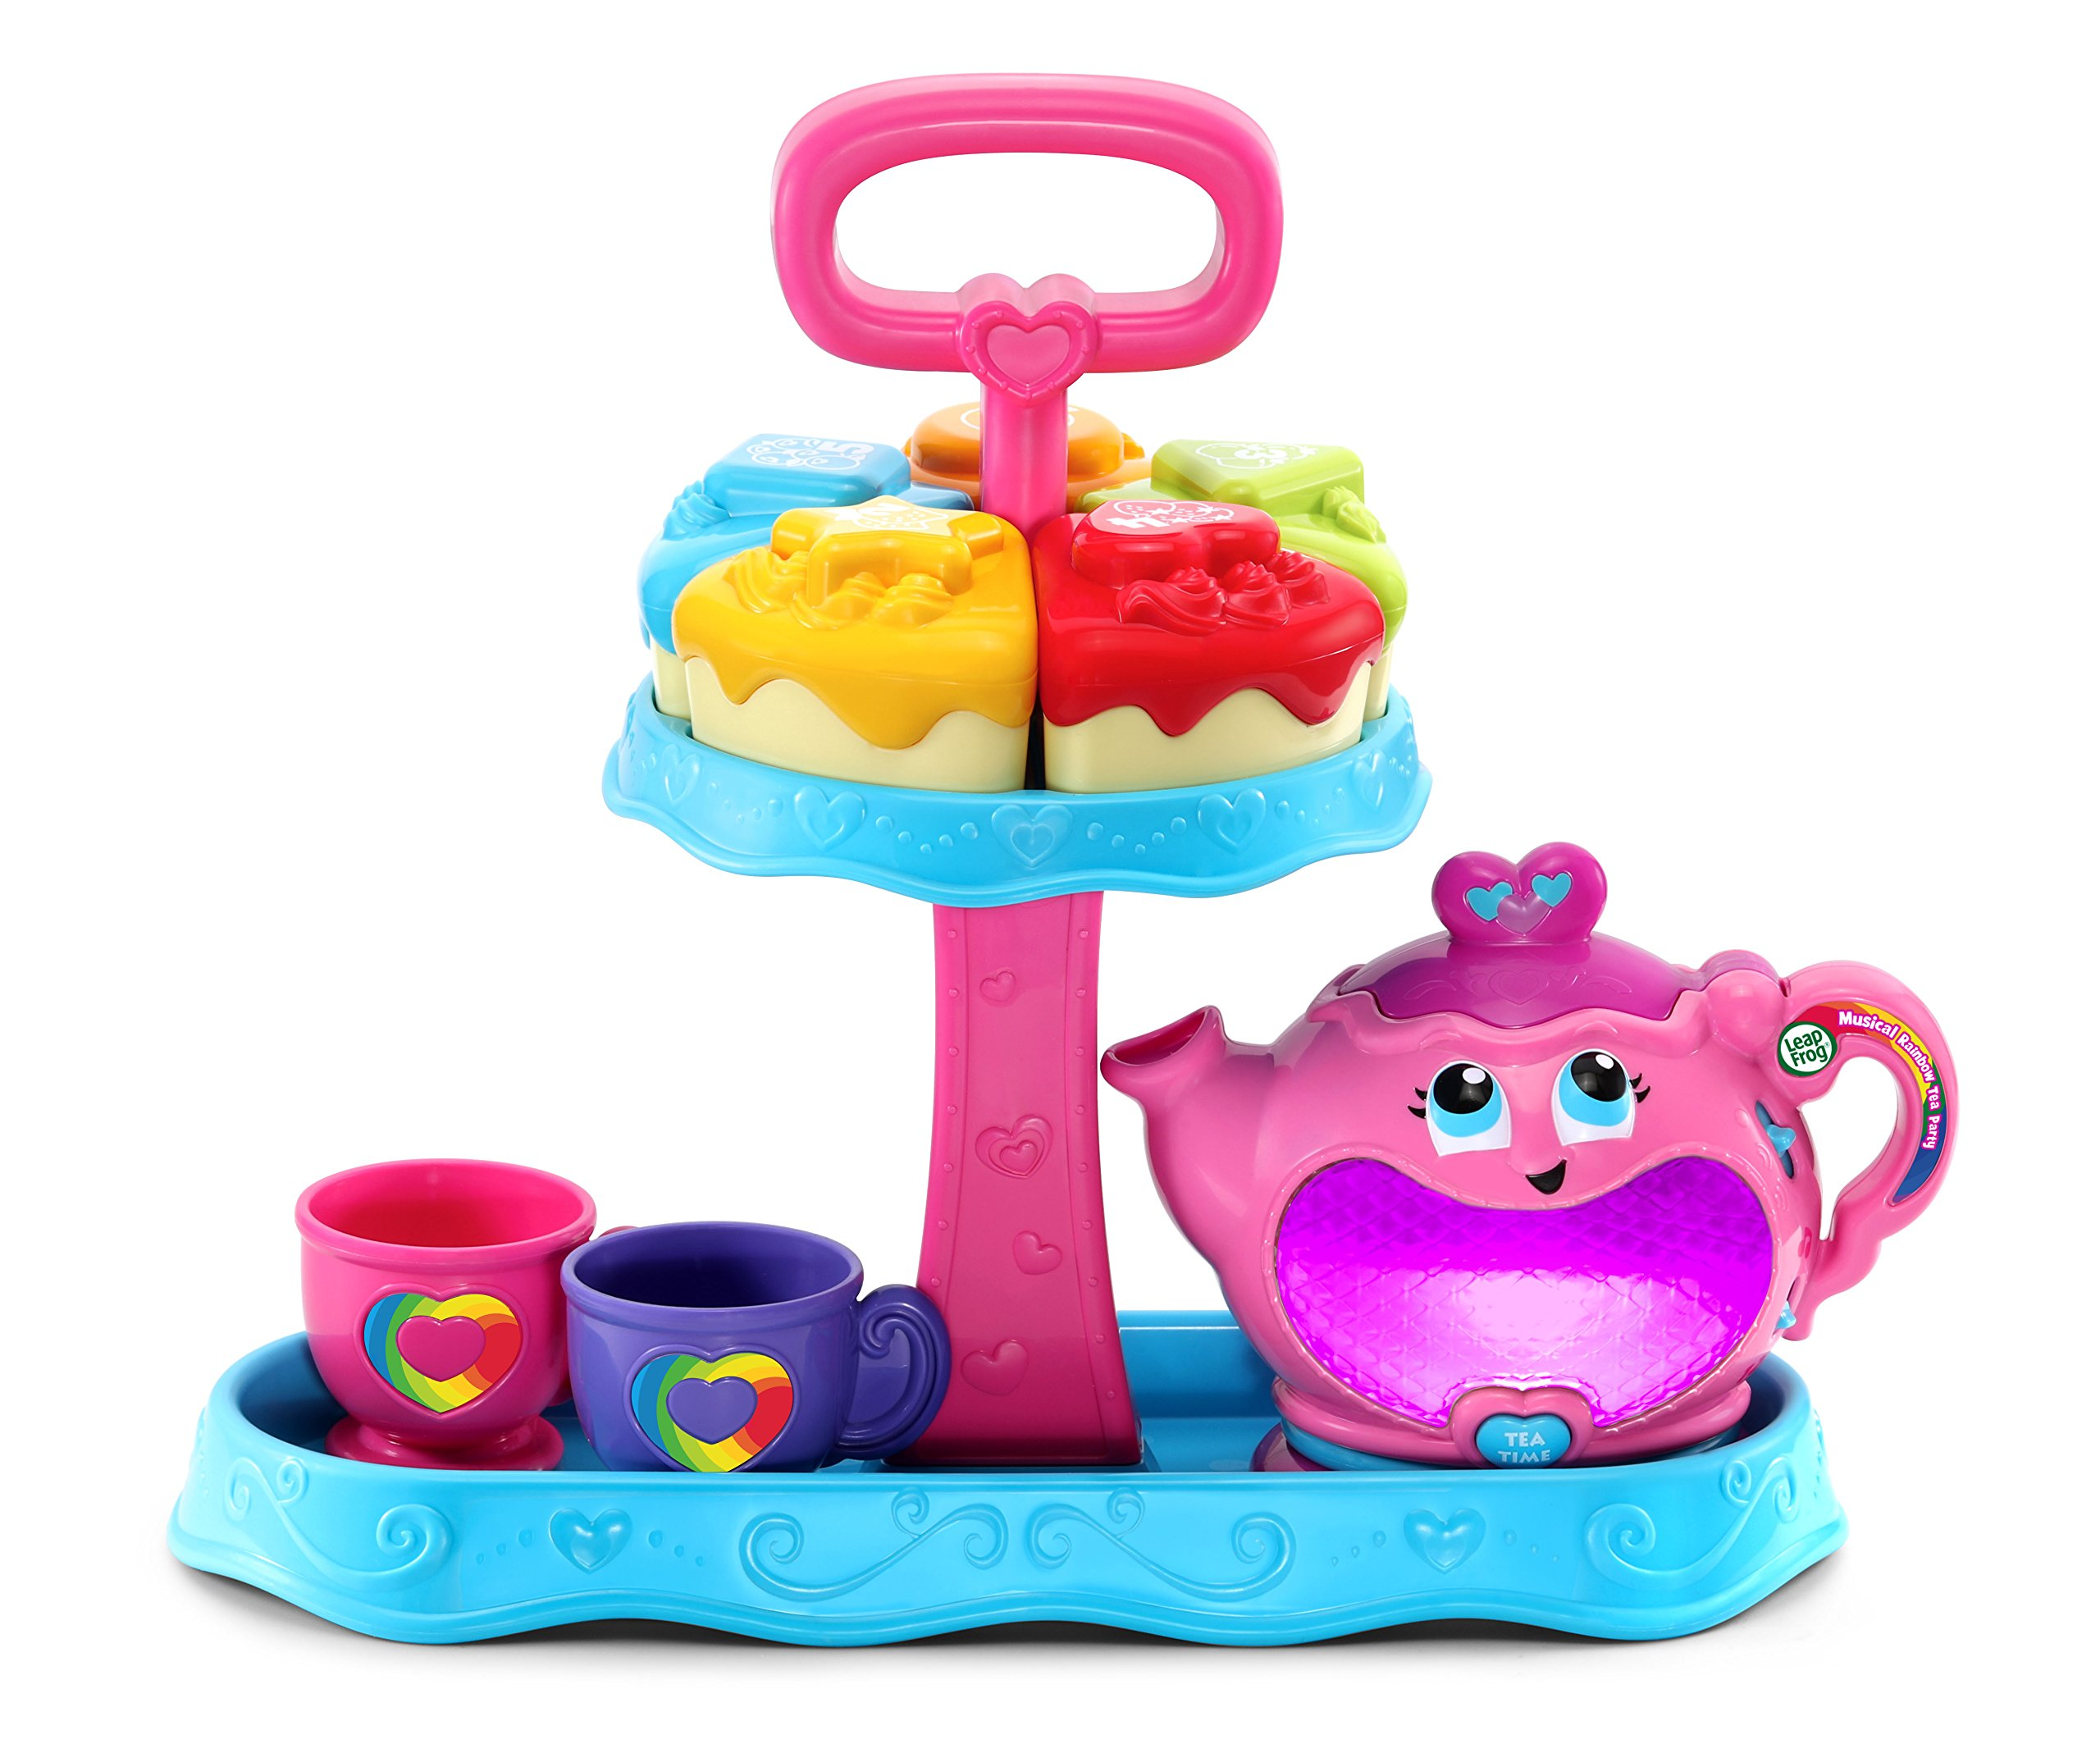 LeapFrog Musical Rainbow Tea Party Toy by LeapFrog